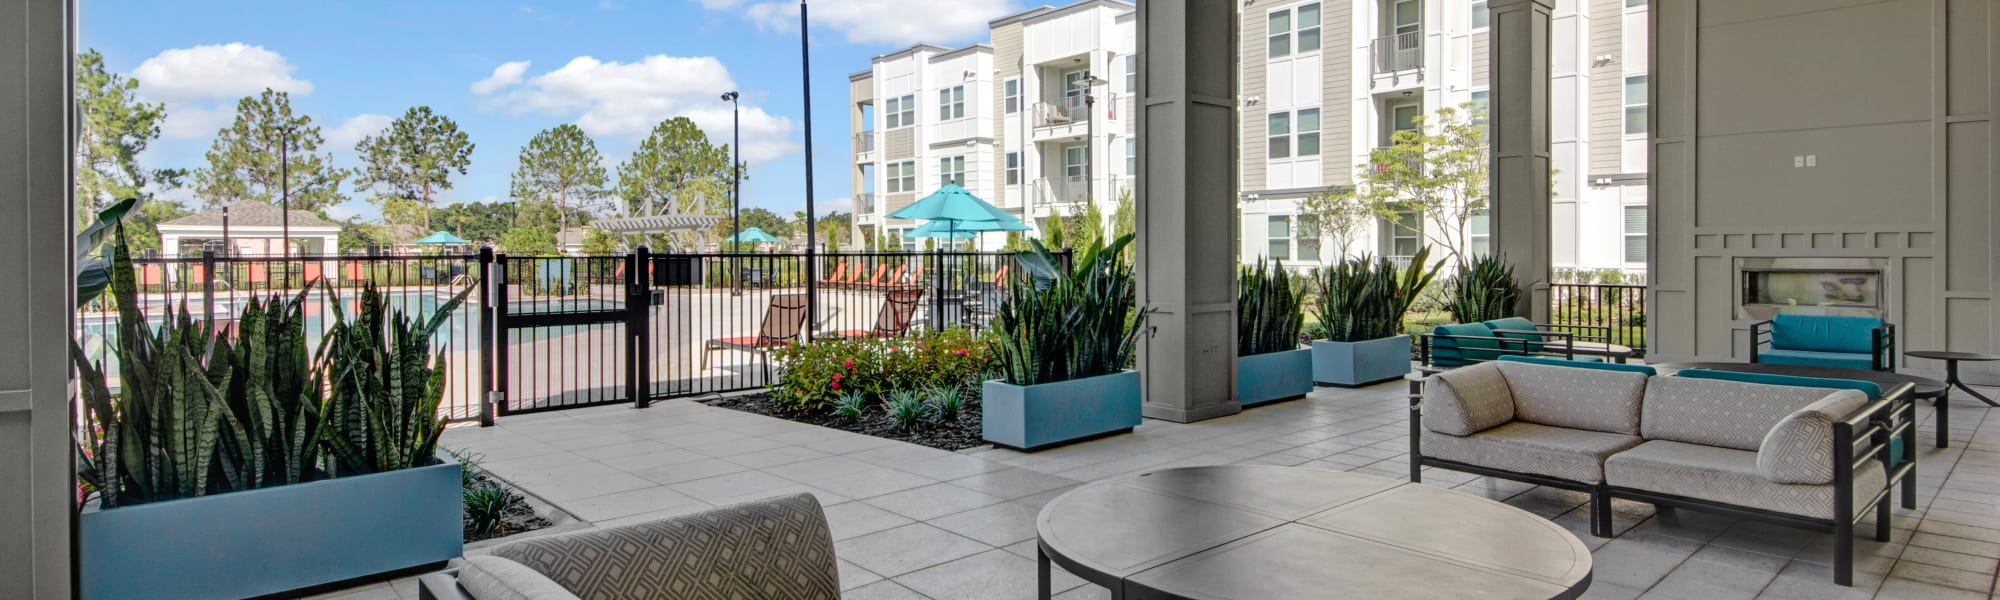 Schedule a tour of Linden on the GreeneWay in Orlando, Florida